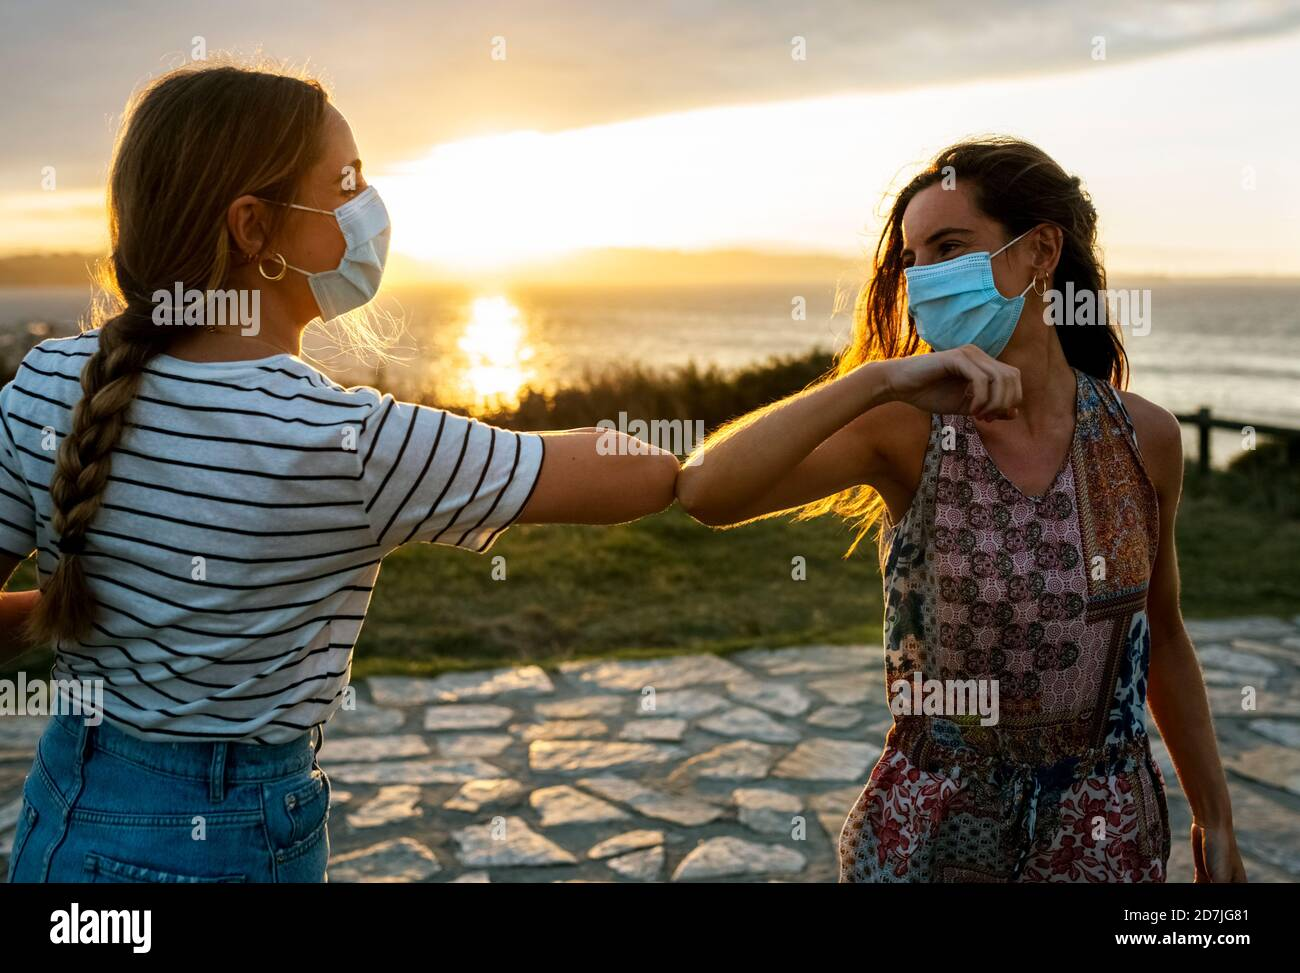 Women in protective face masks elbow bumping against sky during COVID-19 outbreak Stock Photo